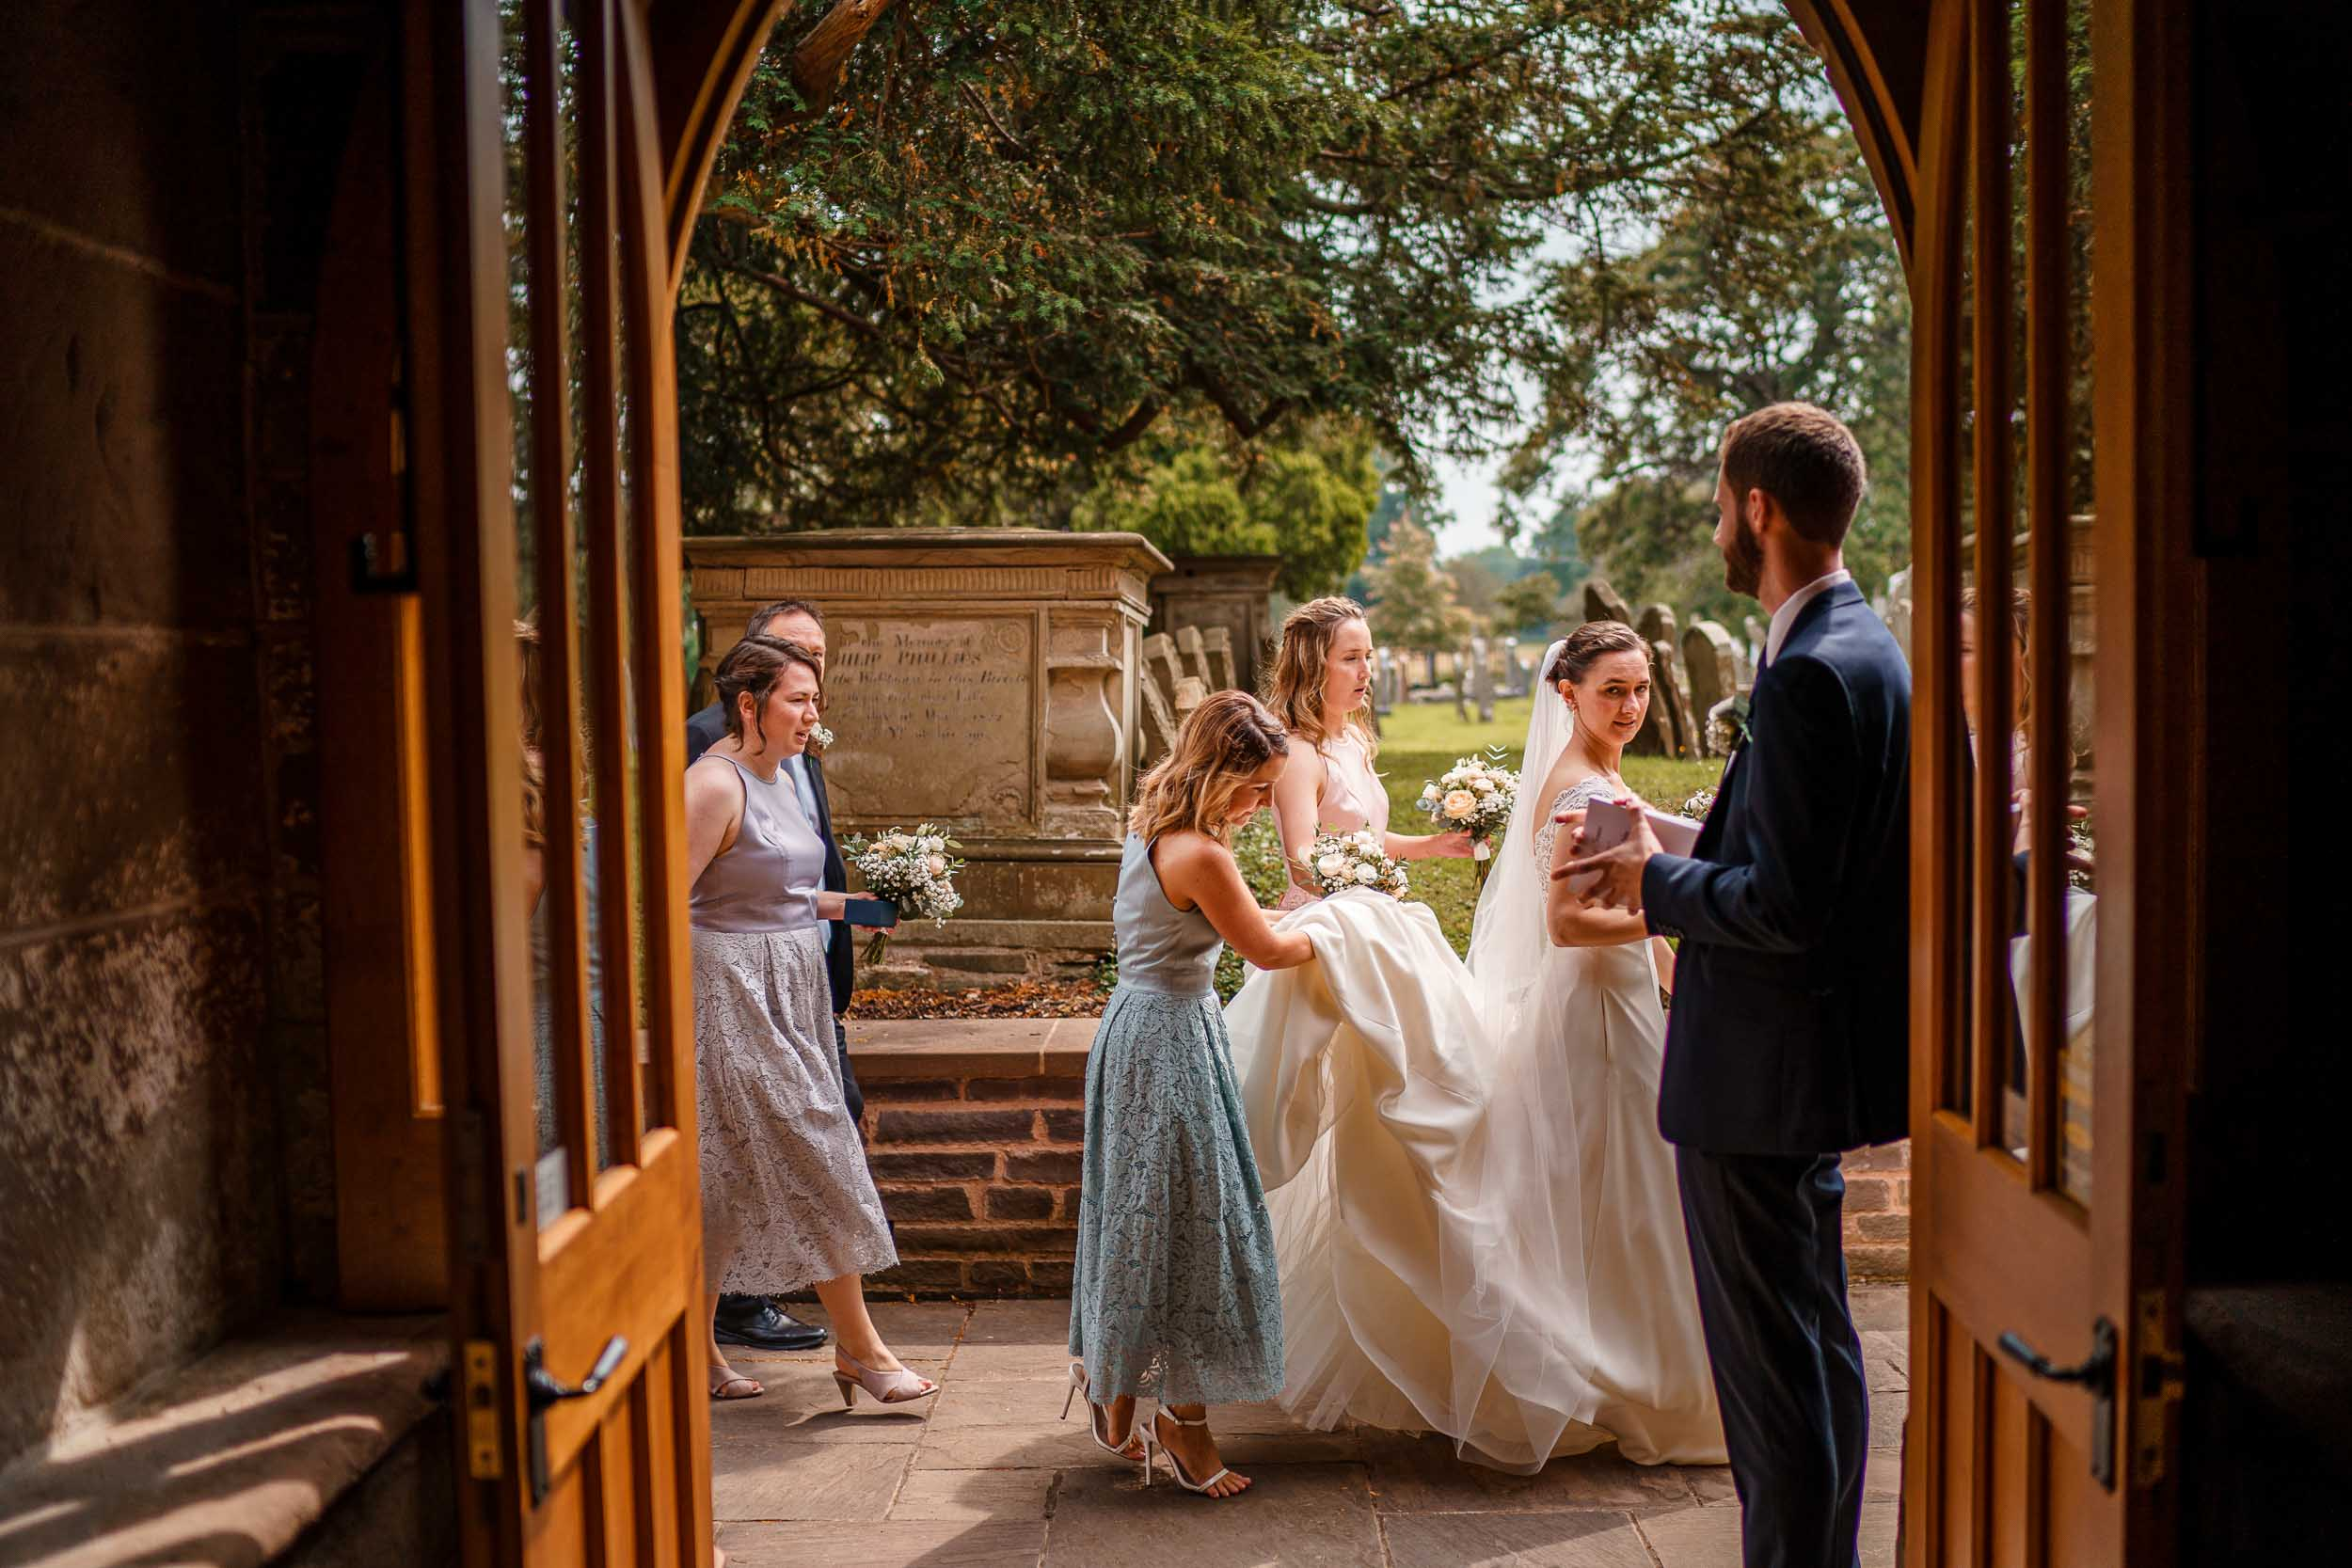 Herefordshire Wedding Photographer- Wedding Photography in Herefordshire venues